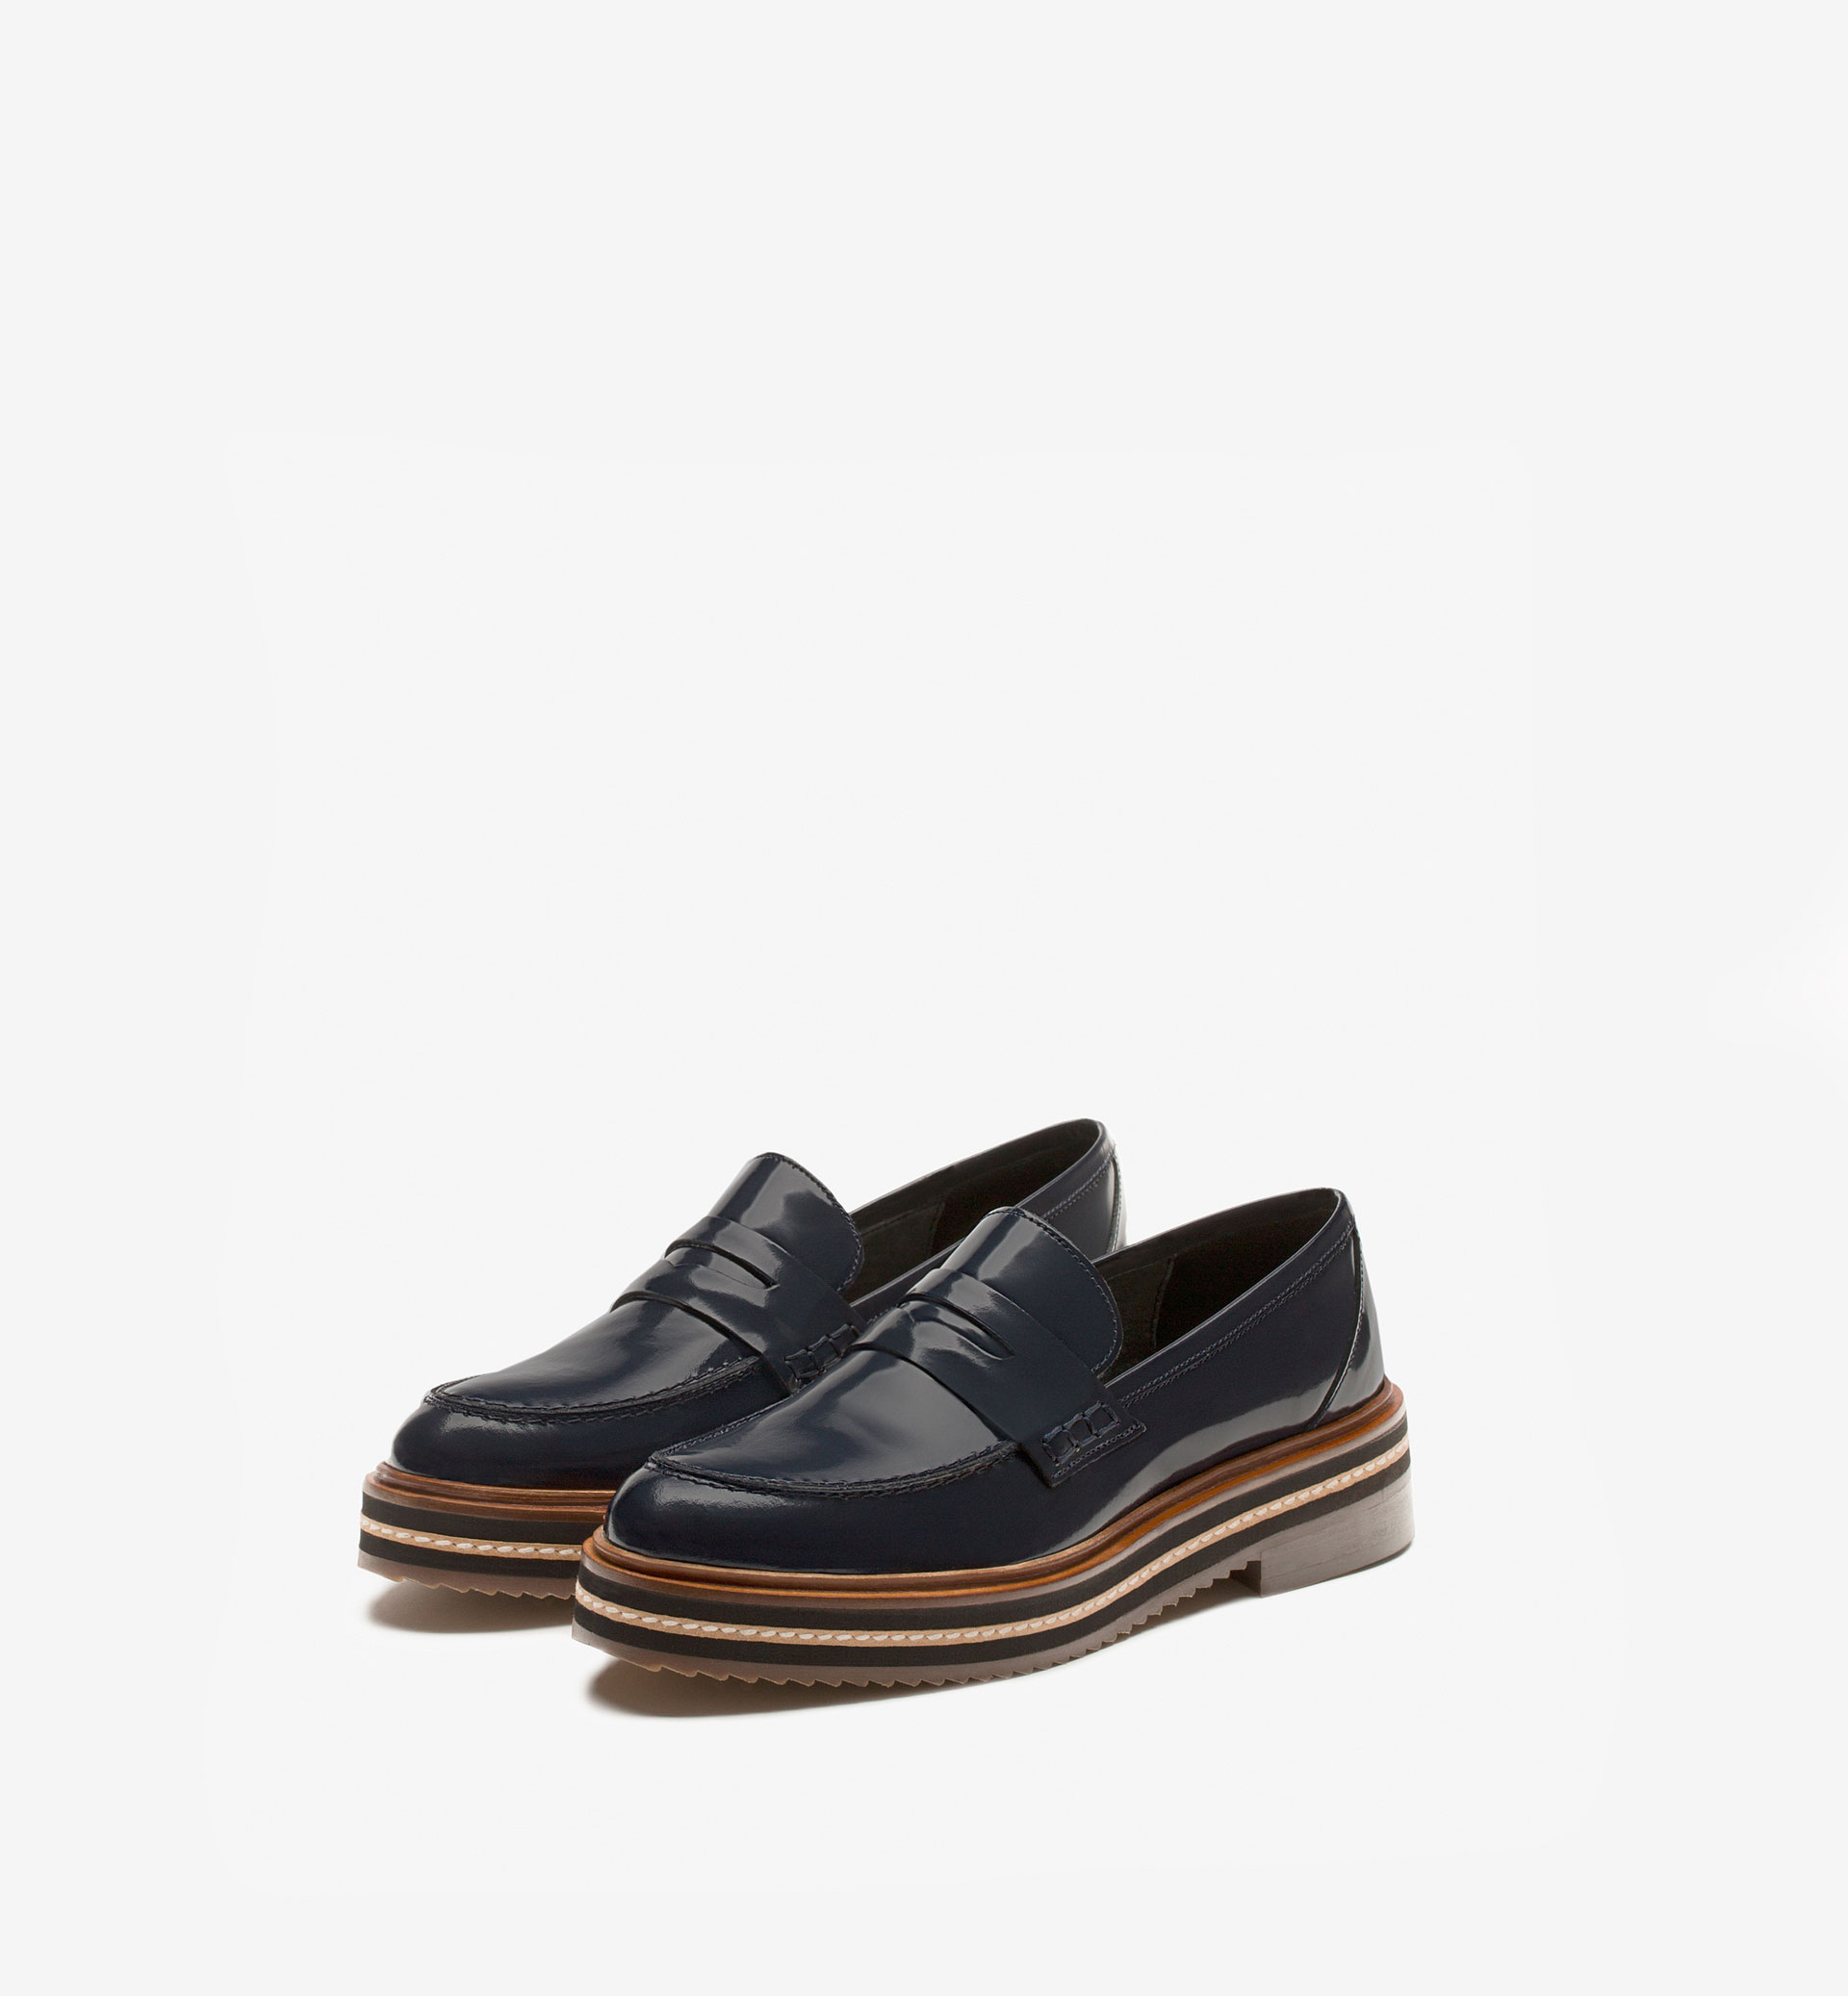 ANTIK LEATHER PLATFORM LOAFERS